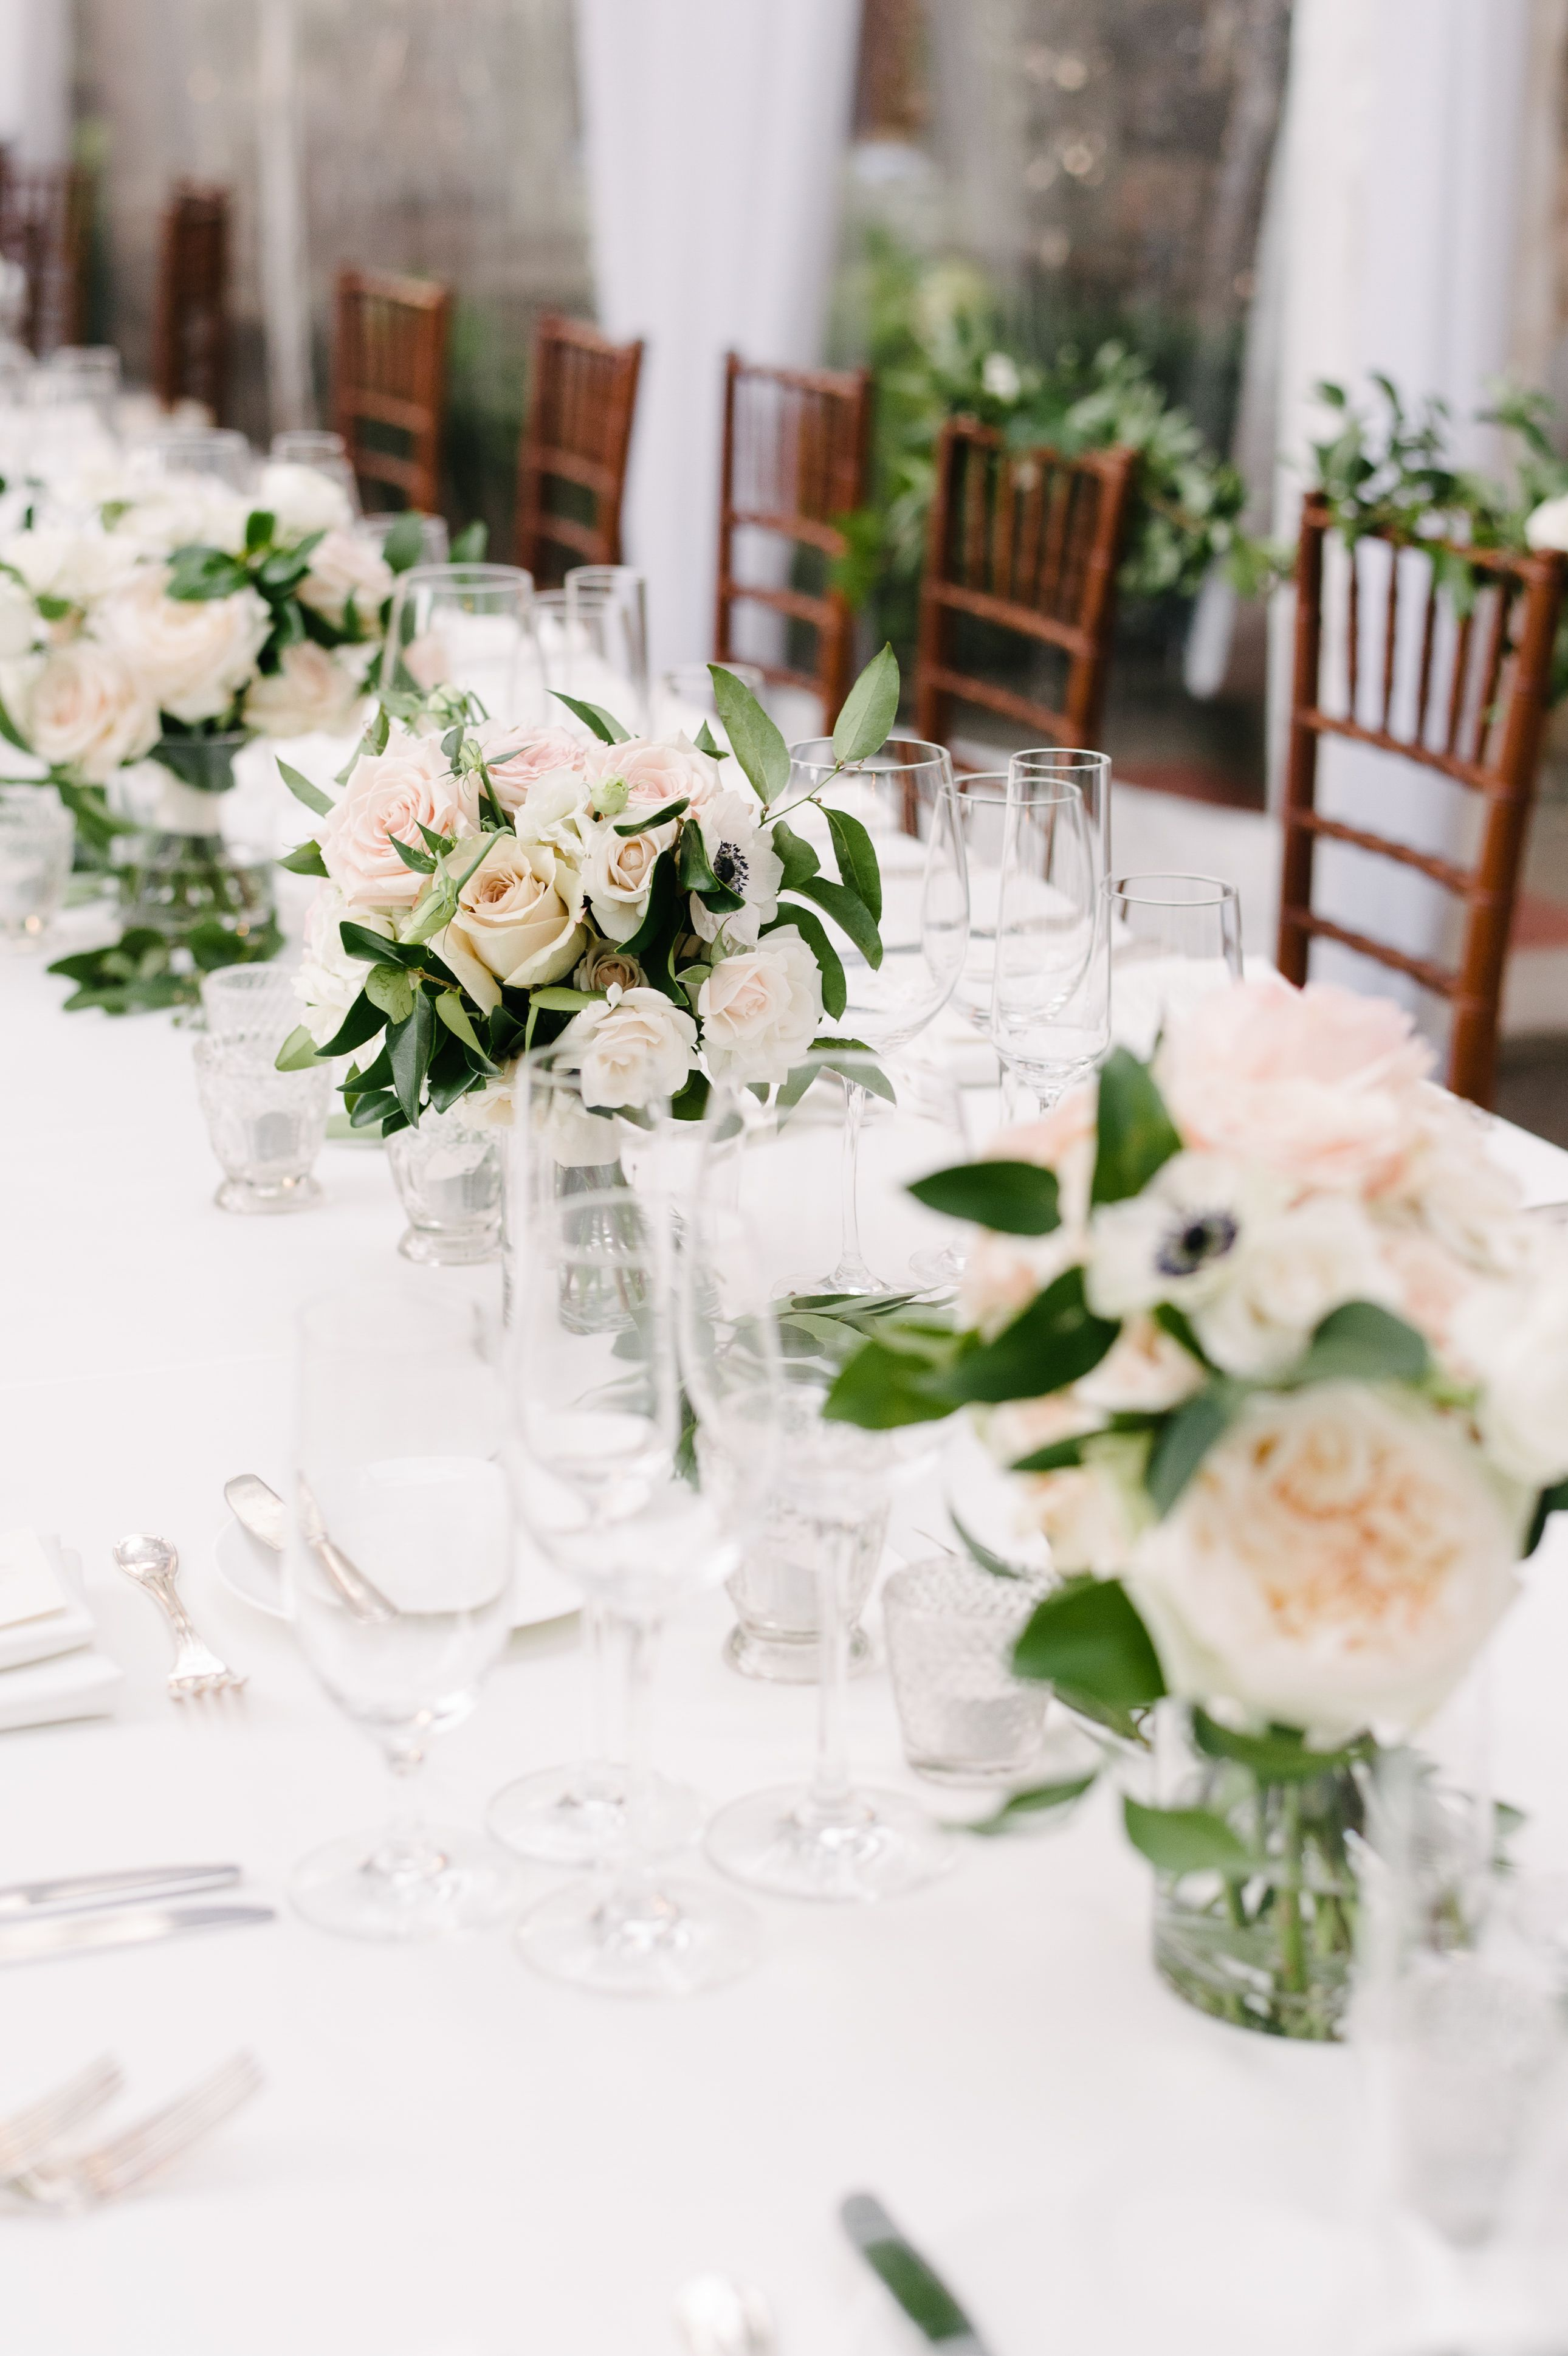 You Are Going To Love Where This Bride Got Her Wedding Inspiration Table Arrangements Wedding Wedding Flower Arrangements Table Table Flower Arrangements